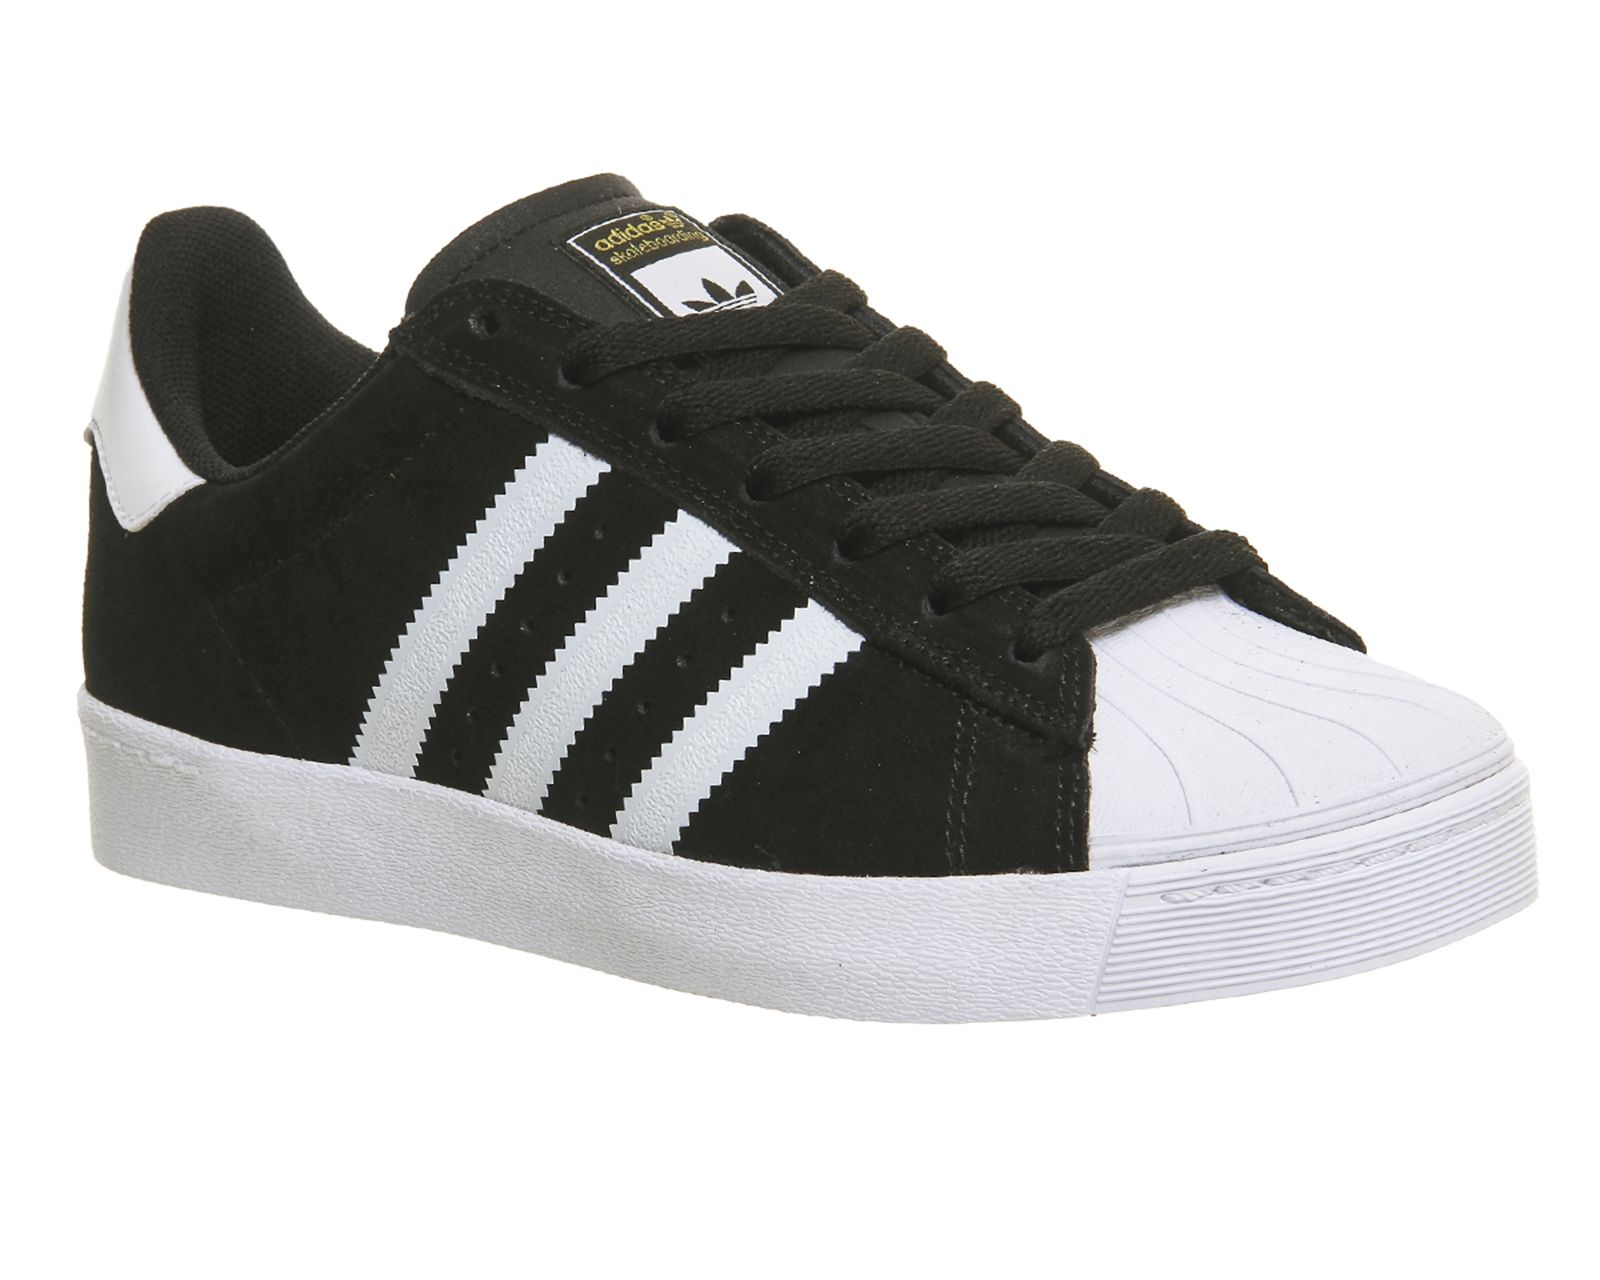 4990a4dcc Buy Core Black White Adidas Superstar Vulc Adv from OFFICE.co.uk ...